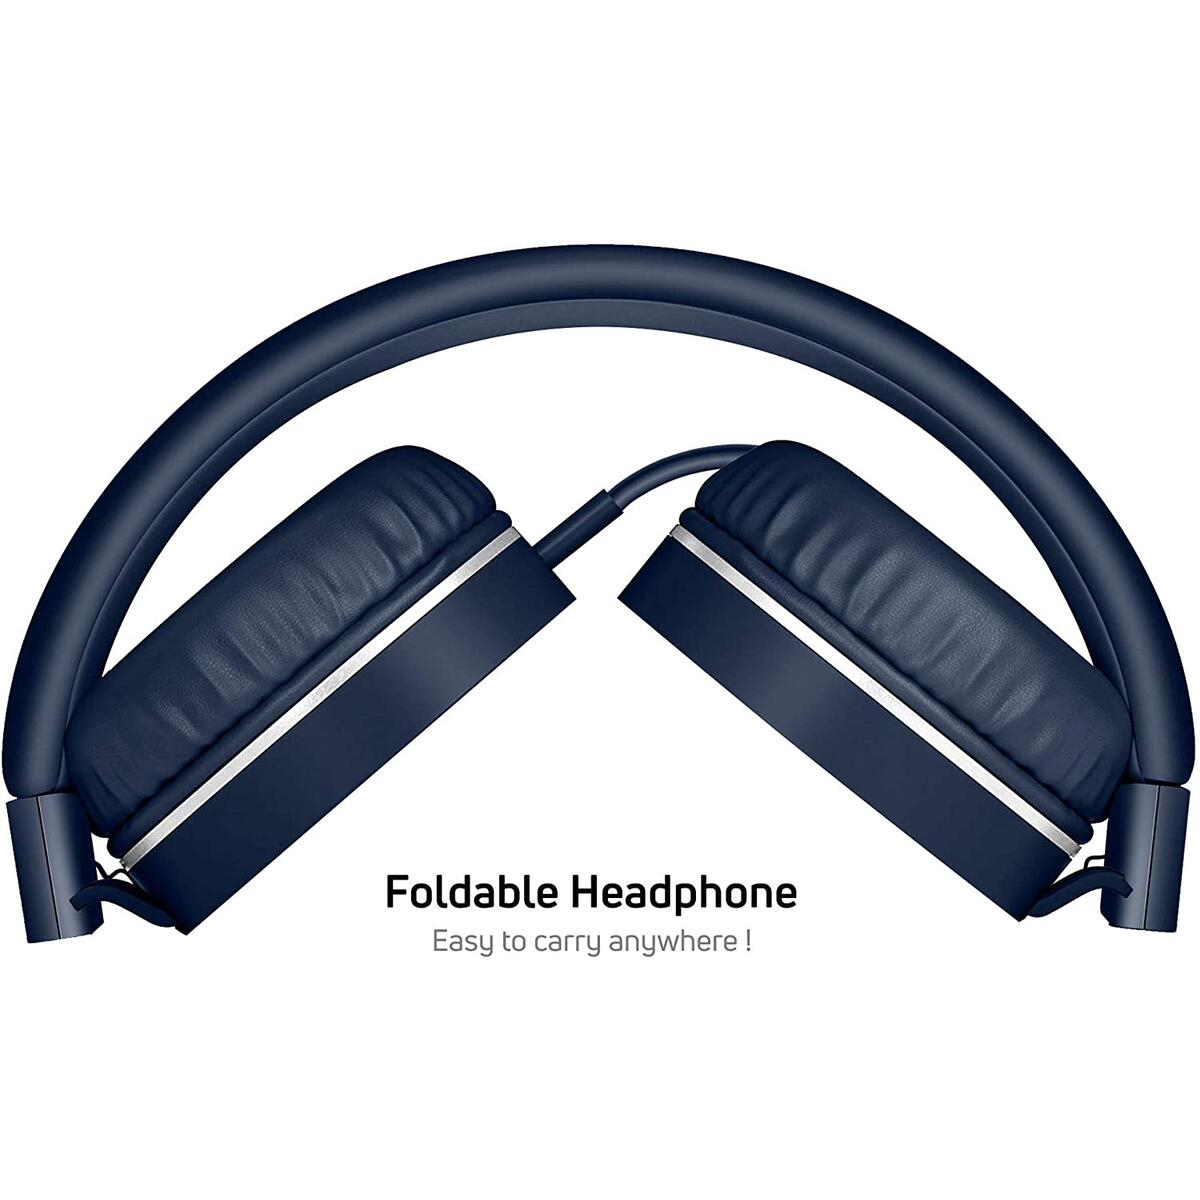 On-Ear Headphones with Built-in Mic, Adjustable Headband, Soft Ear Cushioned Pads, Foldable Design, for Phone or Computer Use (Matte Navy)